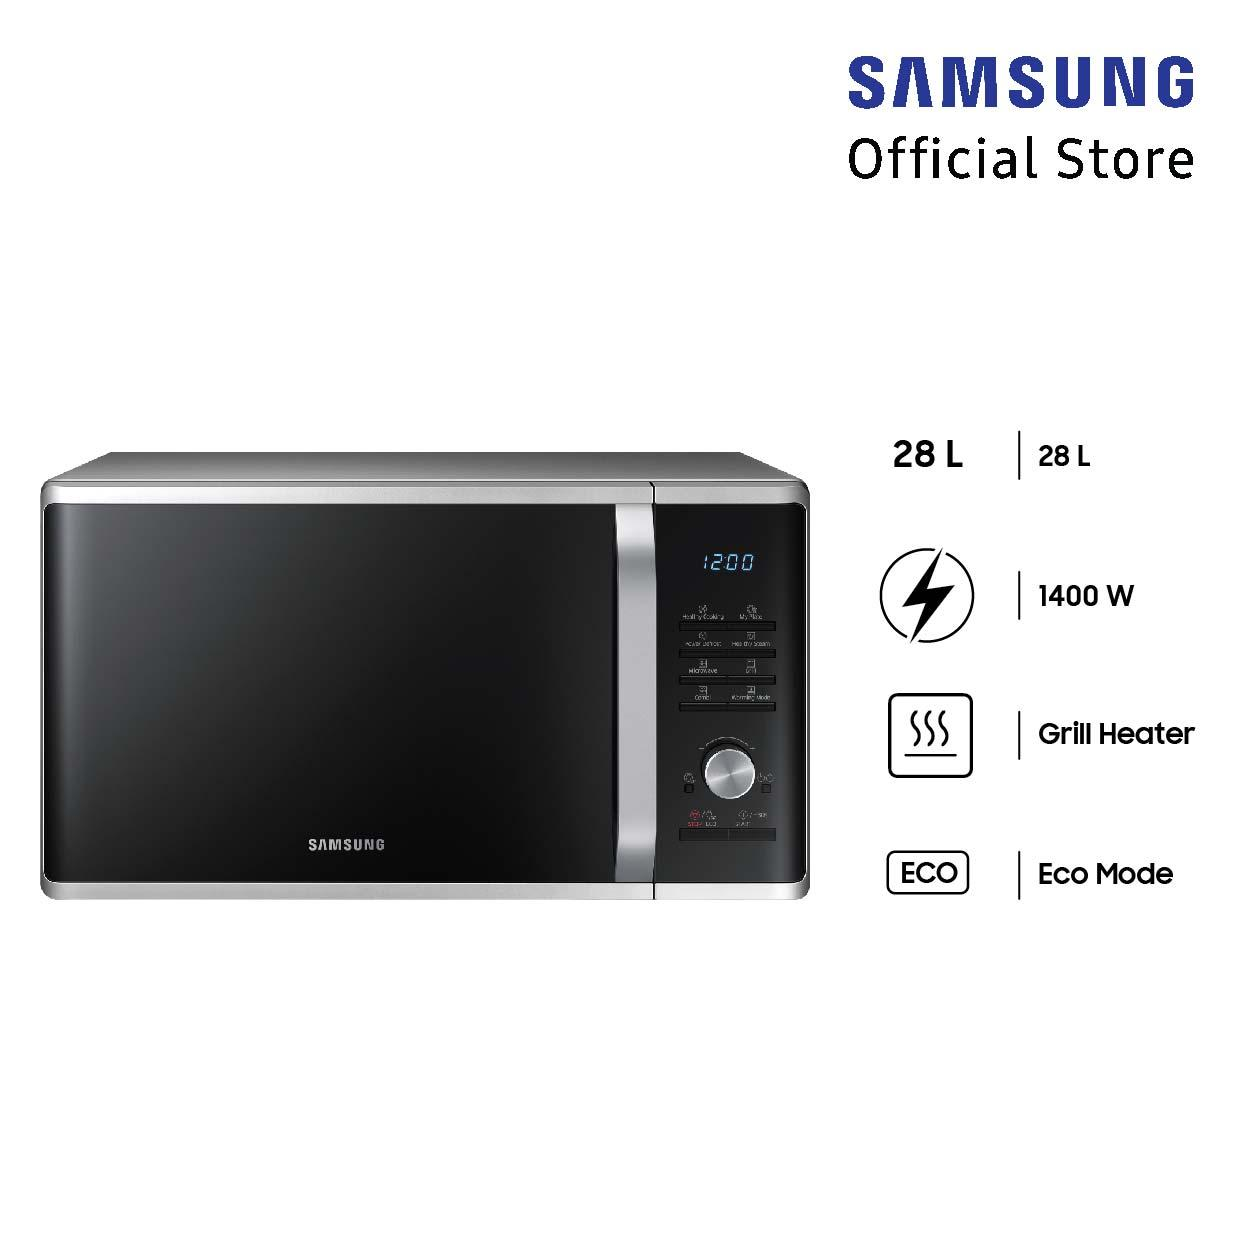 Samsung Microwave Grill, 28l - Mg28j5285us By Lazada Retail Samsung.